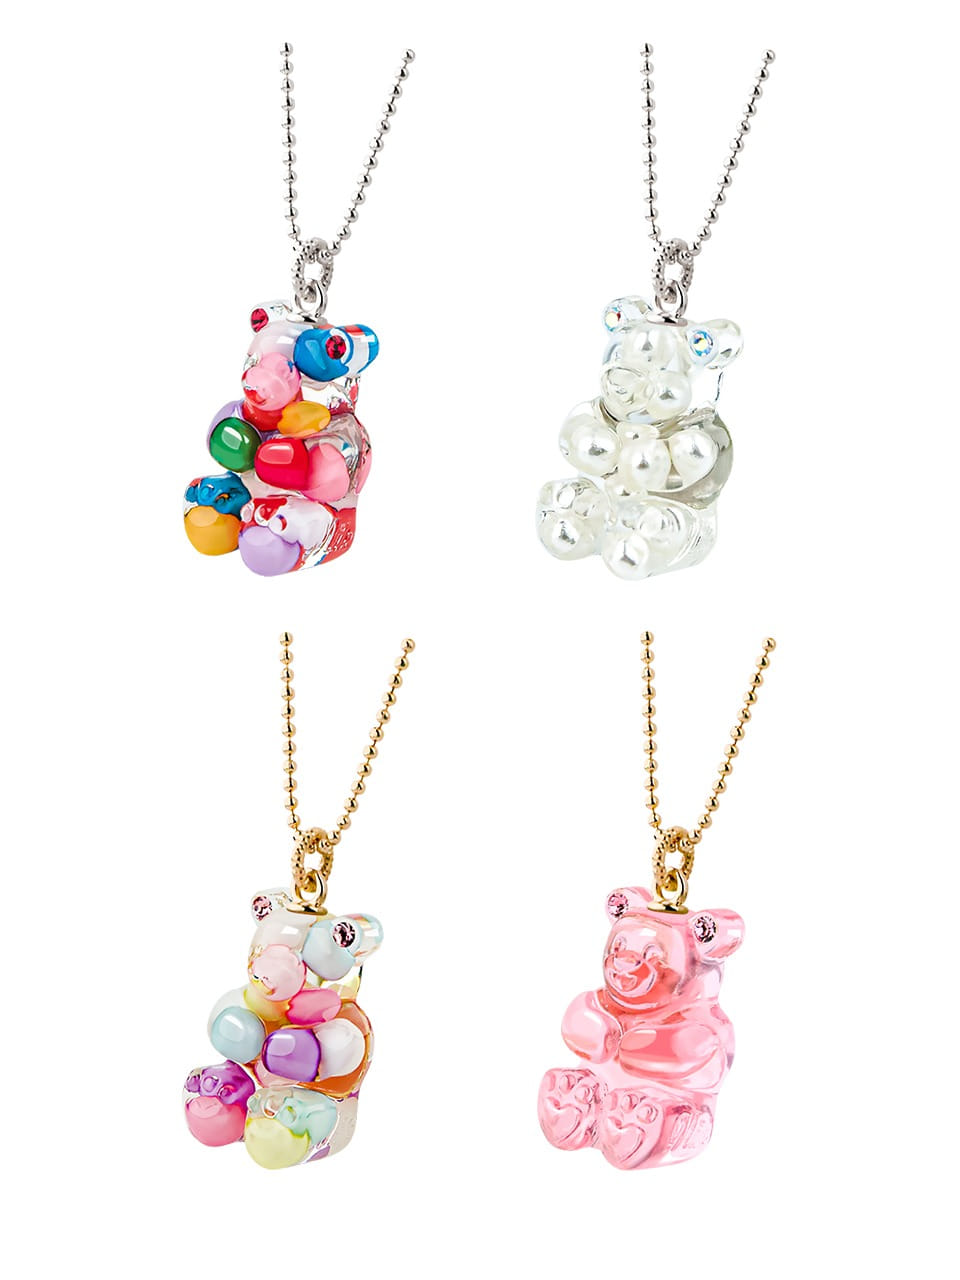 GUMMY BEAR NECKLACE(13 COLORS)